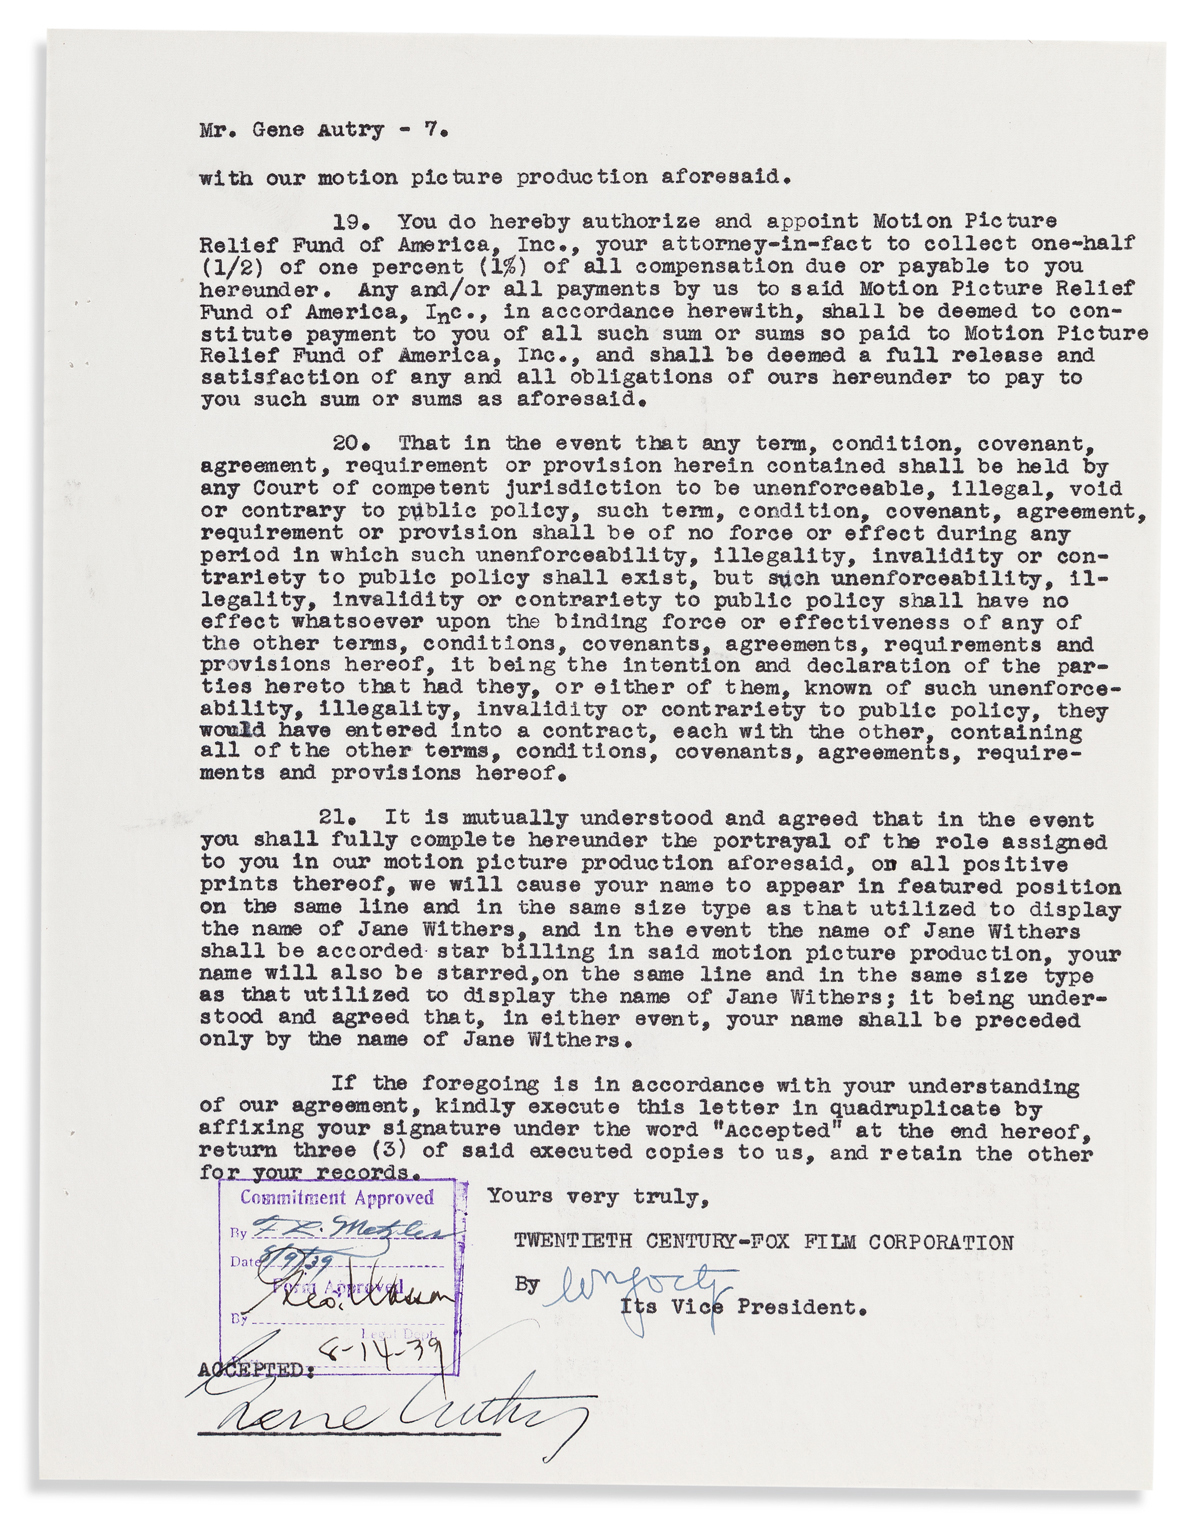 AUTRY, GENE. Typed Document Signed, complete agreement between him and Twentieth Century-Fox Film Corporation for the film Shooting Hig